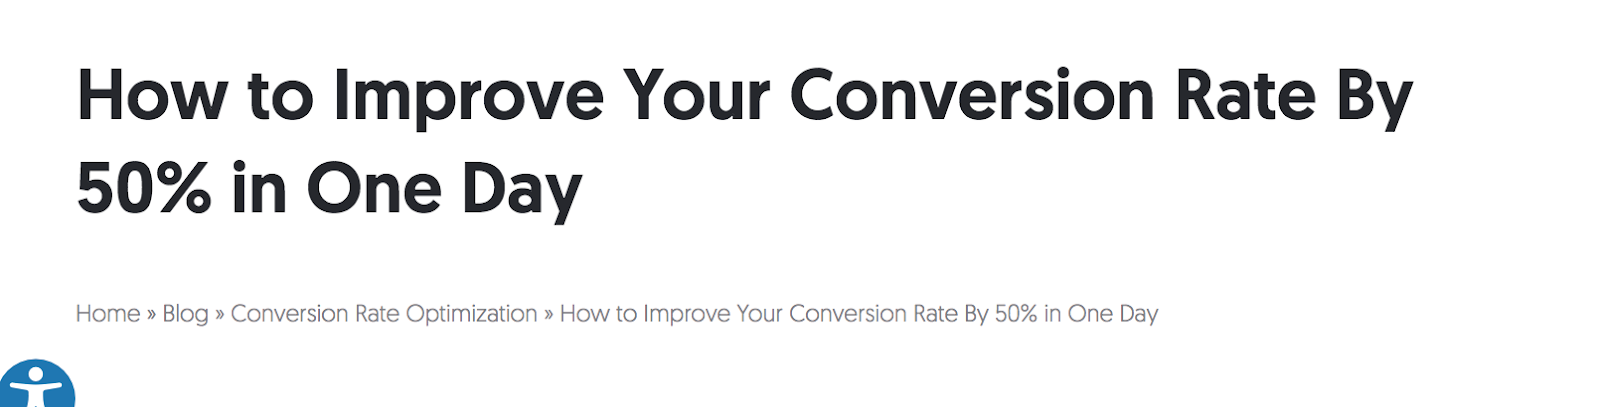 How to Improve Your Conversion Rate by 50% in One Day blog post example